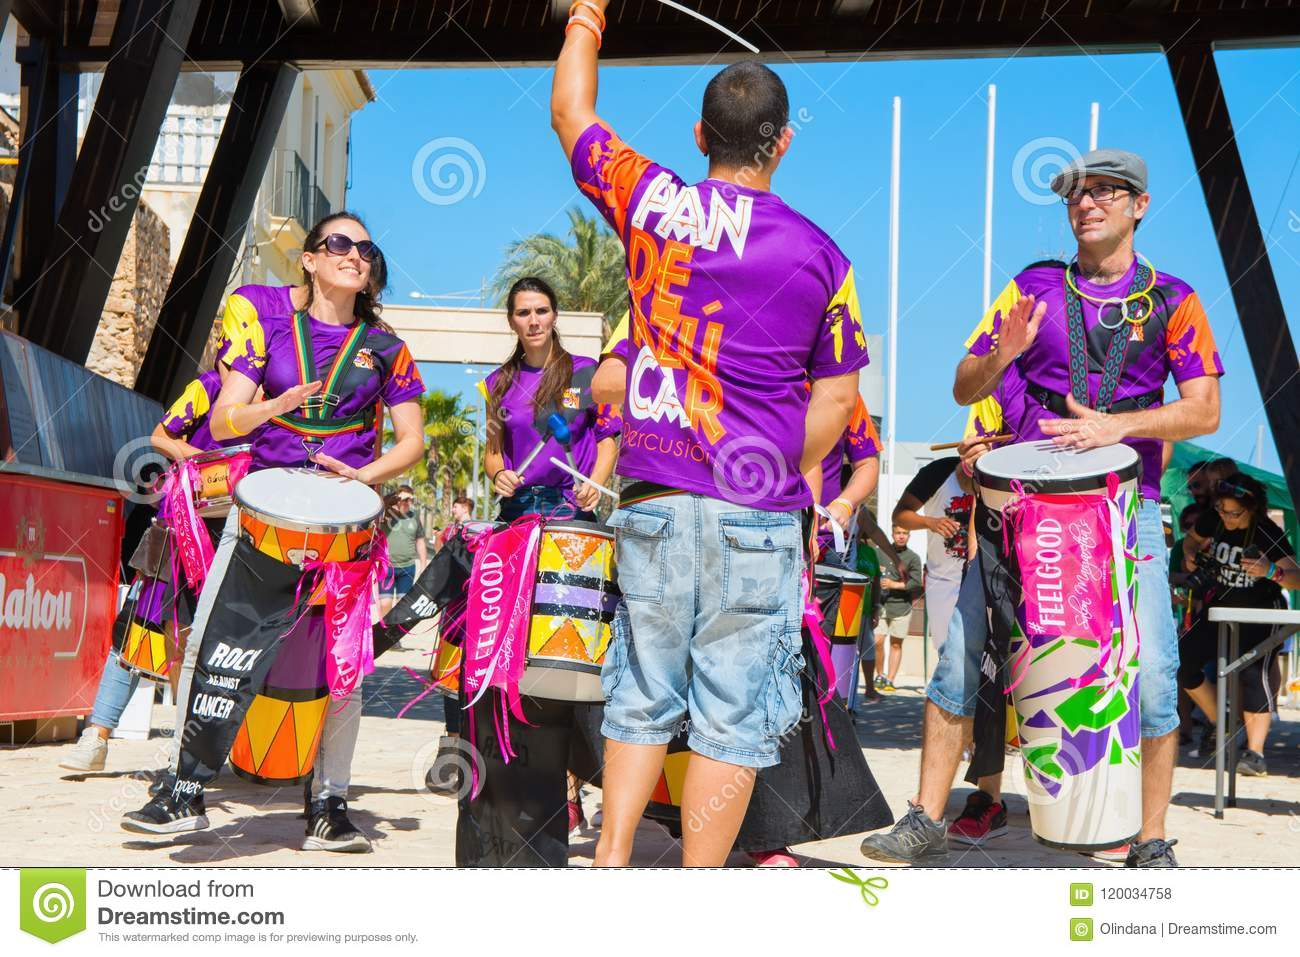 SPAIN-TORREVIEJA, ALICANTE, CONCERT ROCK AGAINST CANCER - JUNE 16, 2018: Bateria of Young People Look at Leader Drum Percussion